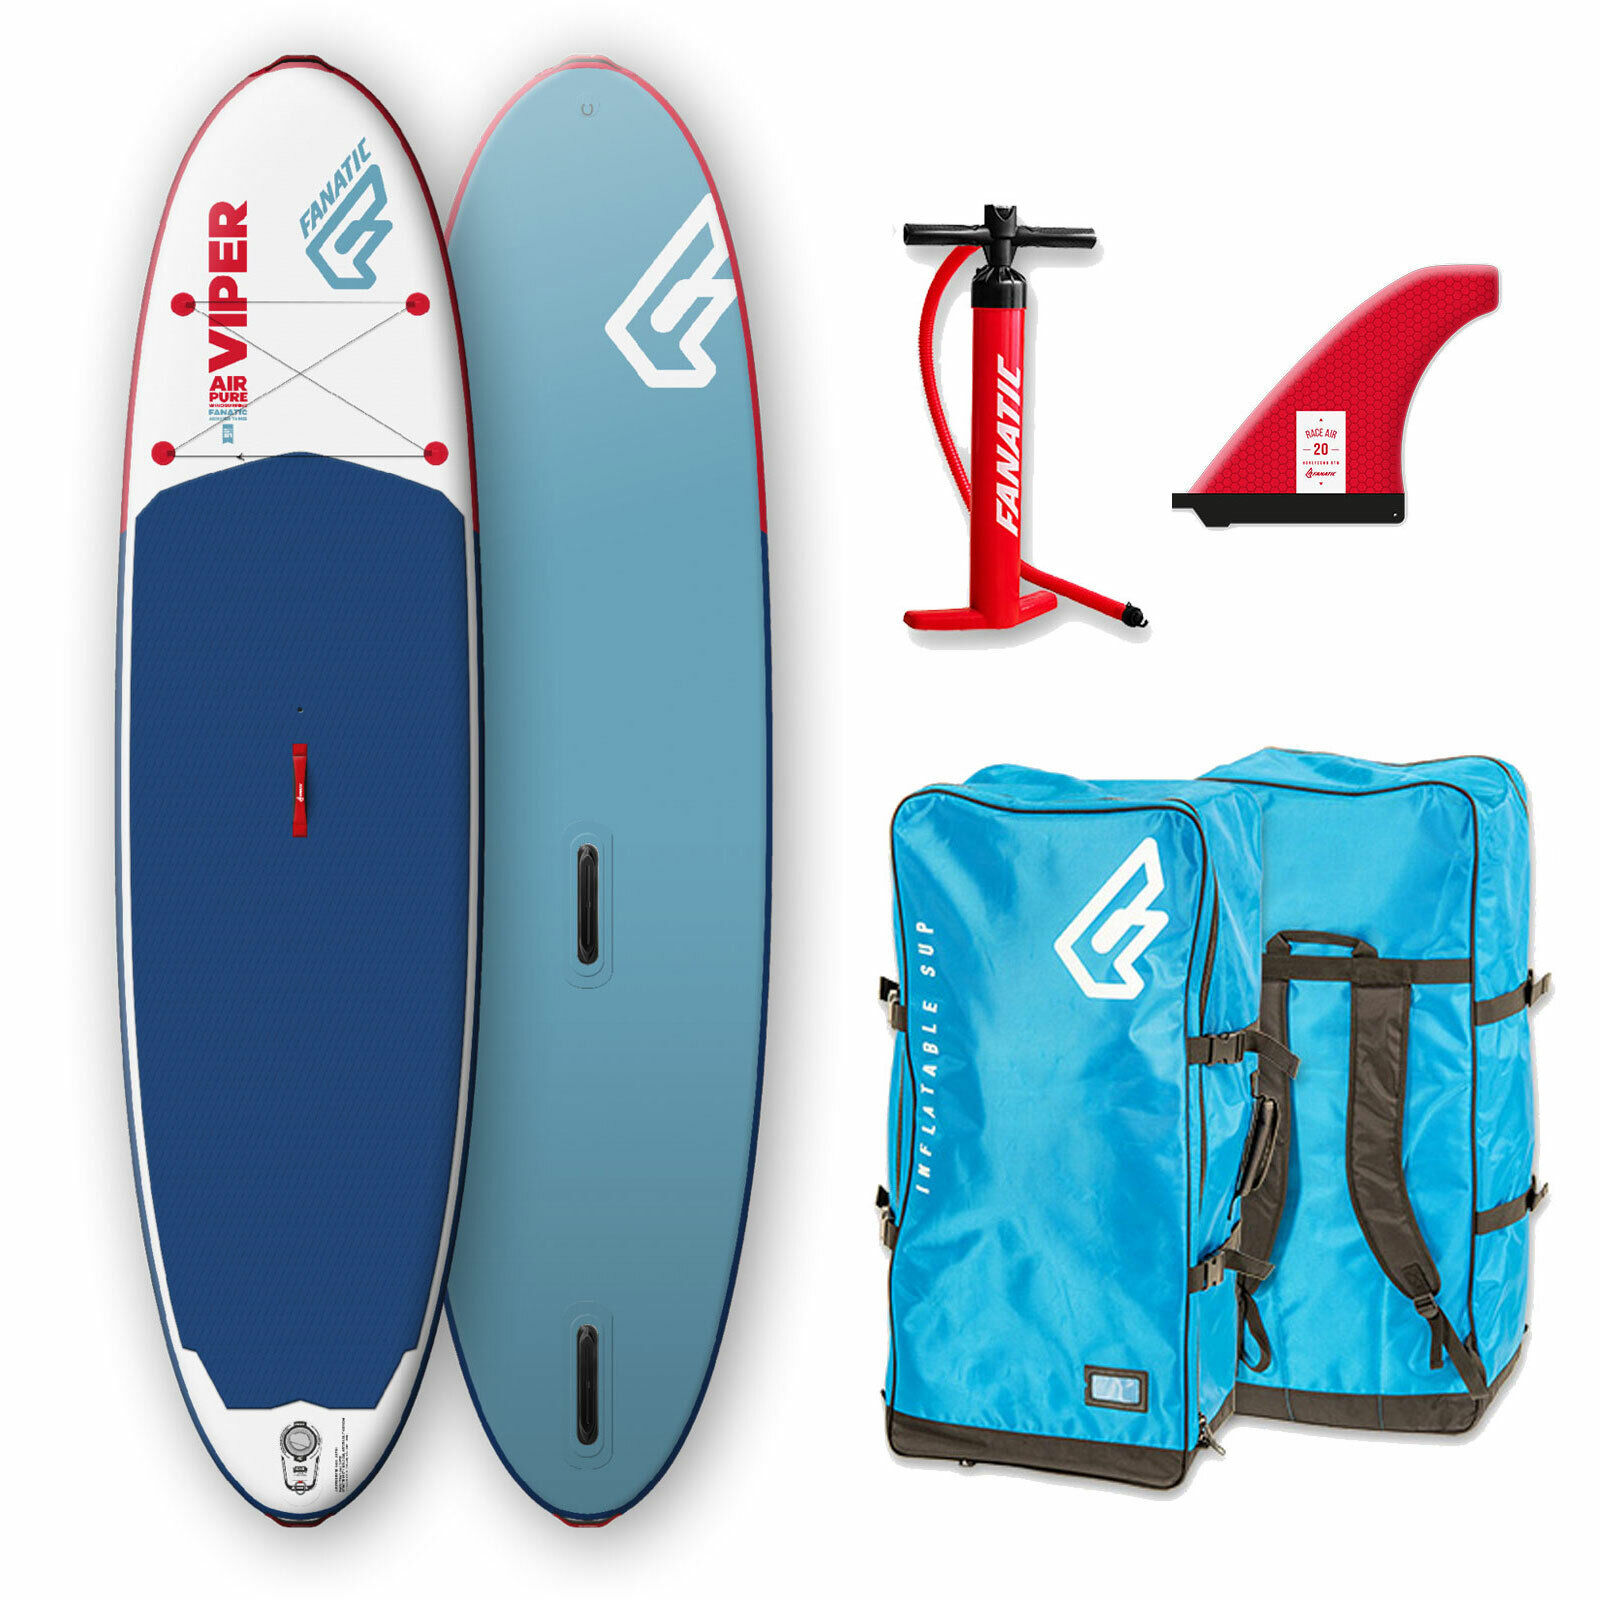 Fanatic Hinchable Viper Air Windsurf Pure Sup I-Sup Surf Tabla Surf de Remo